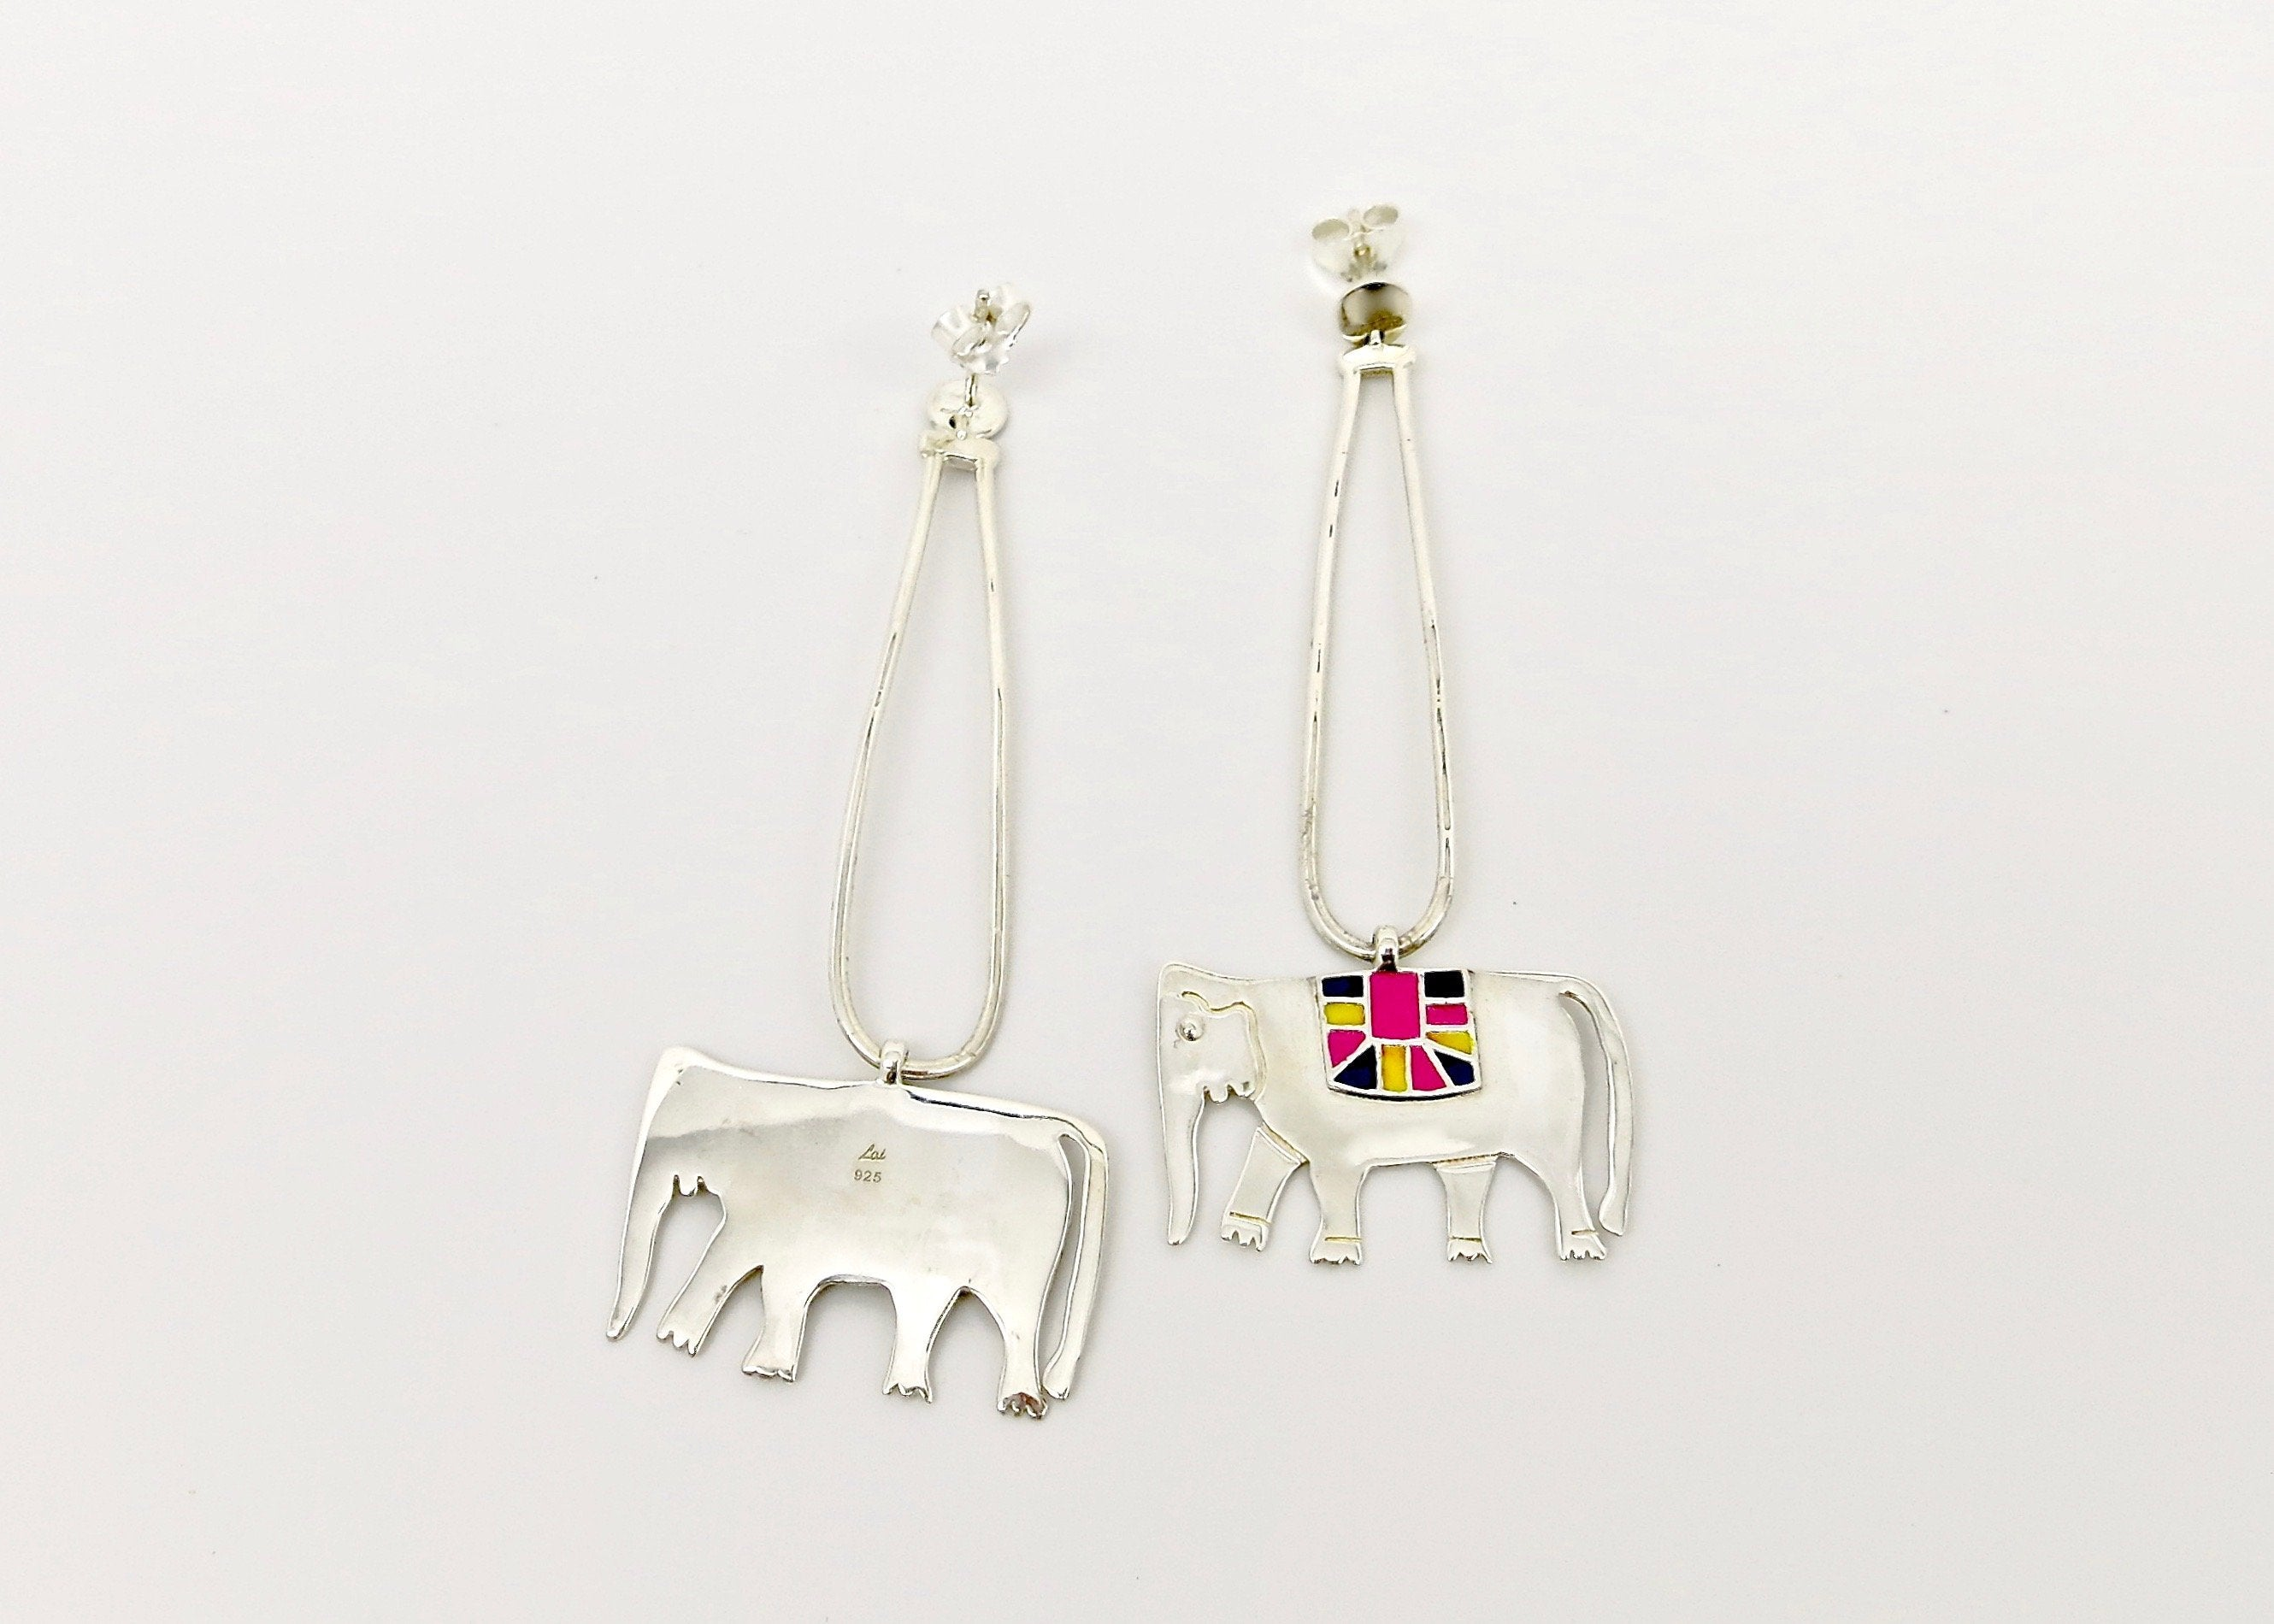 Whimsical, long dangling 'Gaja' (elephant) earrings - Craft Stories Handmade, contemporary, personal and home accessories. Designed in California. Handcrafted in India. Traditional craftsmanship meets modern aesthetics. Sustainable design ethos, fair trade, conscious, artisanal jewelry and home decor. Objects with a story. Unique and on-trend.